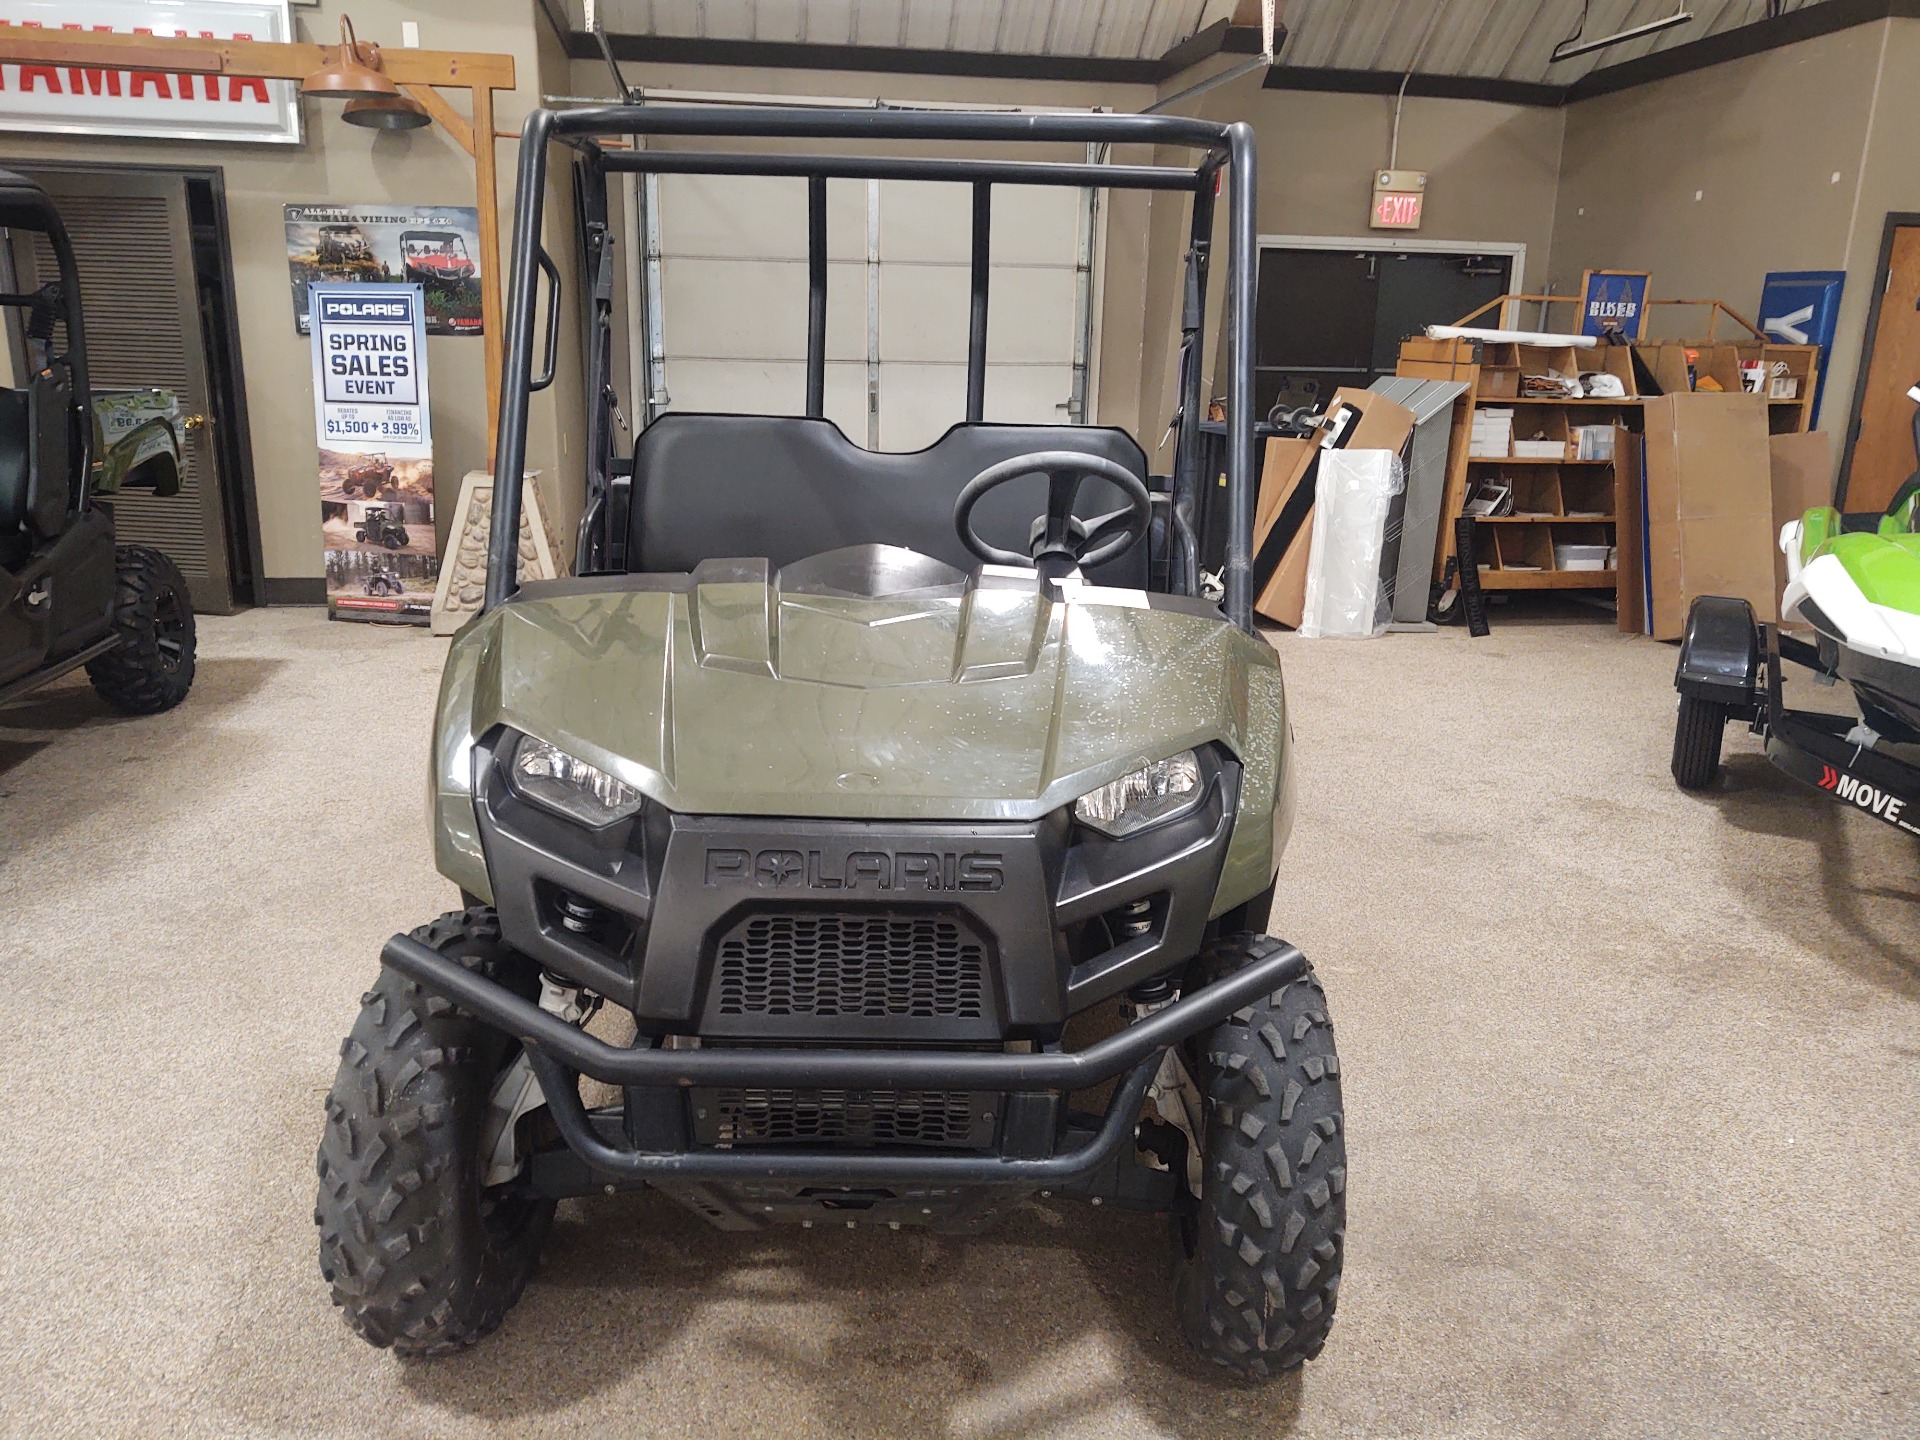 2014 Polaris Ranger® 570 EFI in North Platte, Nebraska - Photo 5